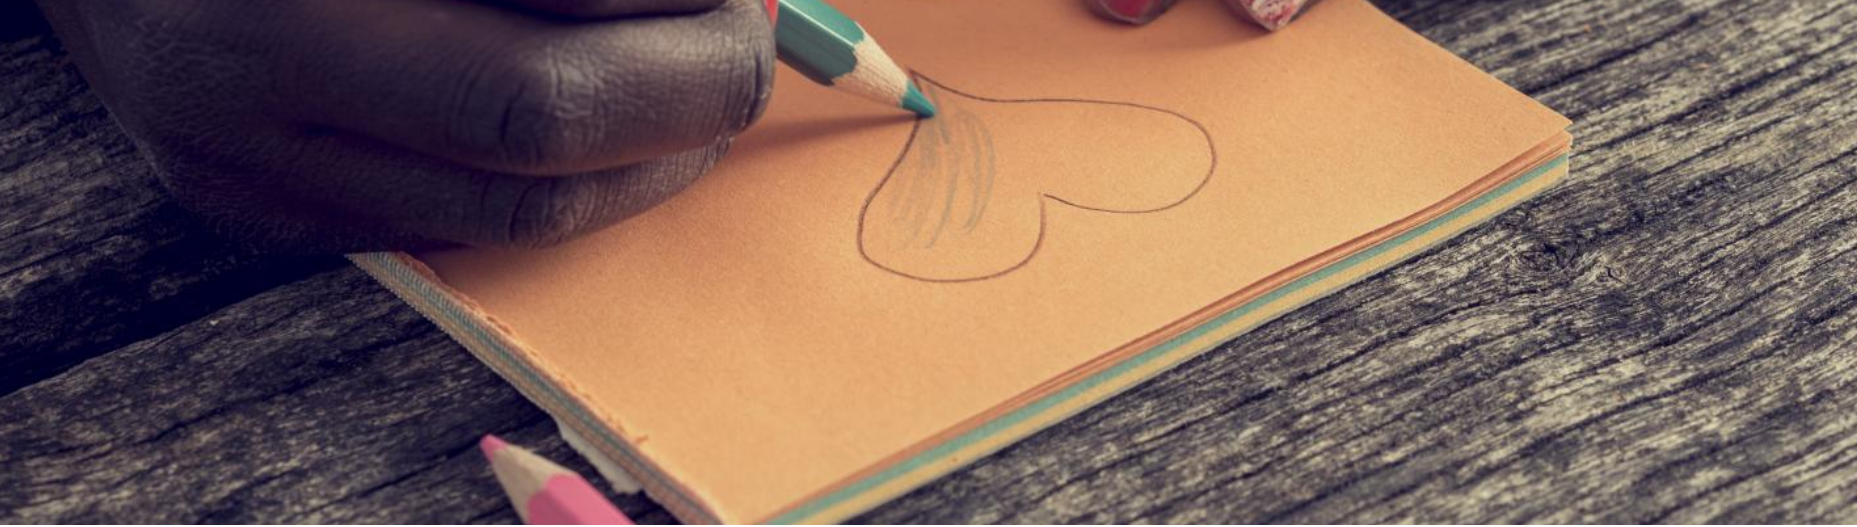 Close-up of a child's hands drawing a heart on an orange piece of paper